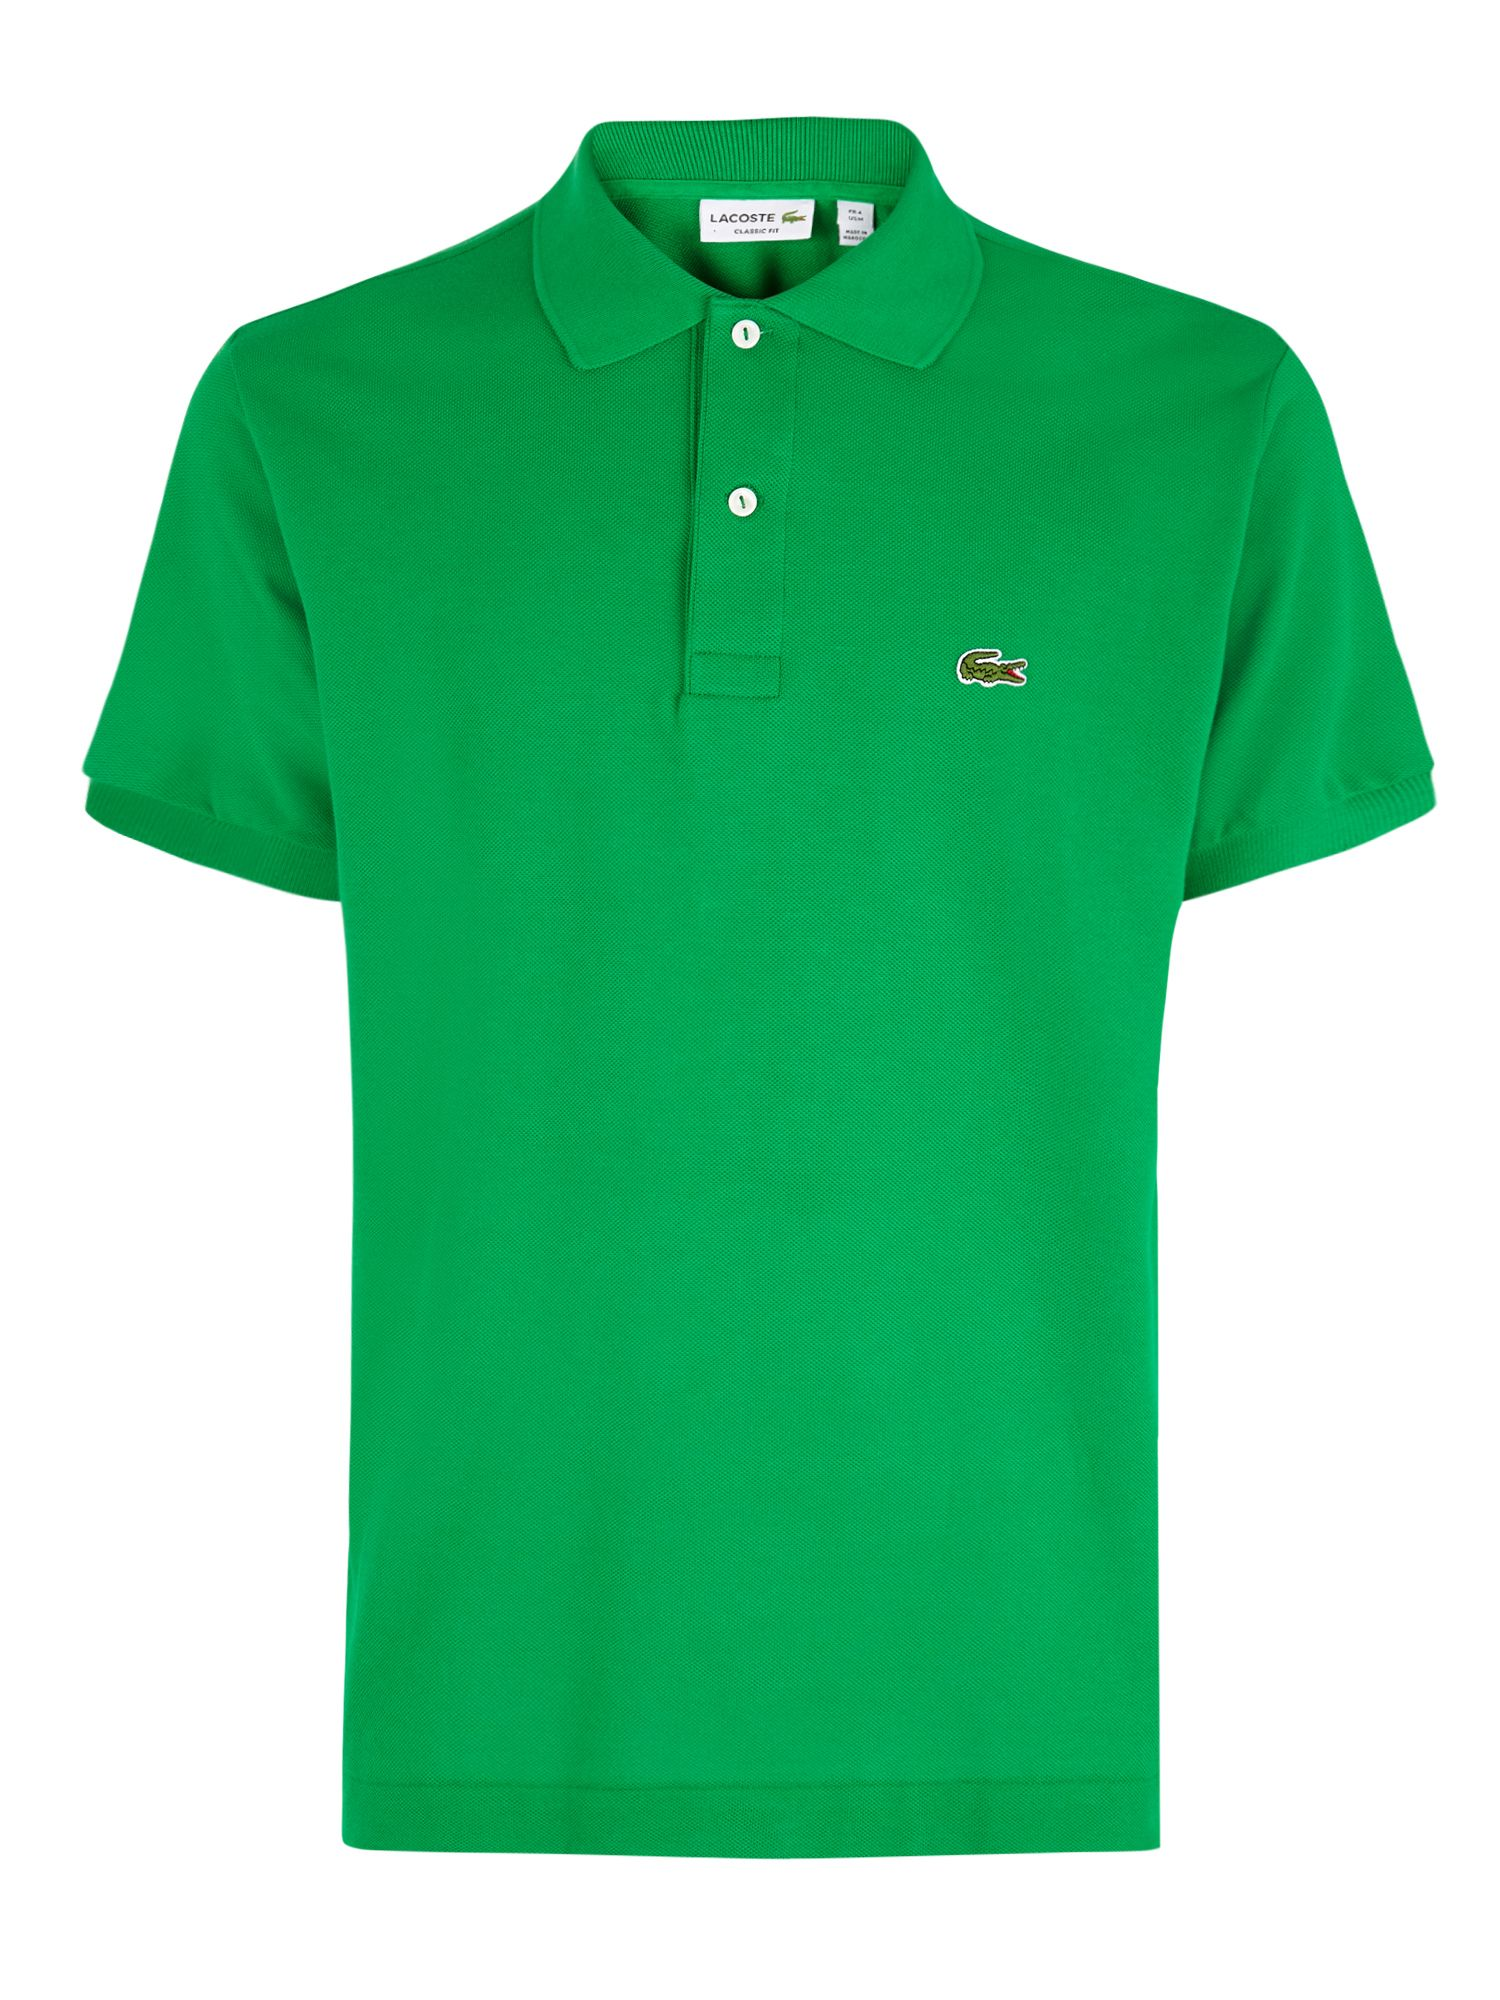 Men's Lacoste Classic L.12.12 Polo, Dark Green